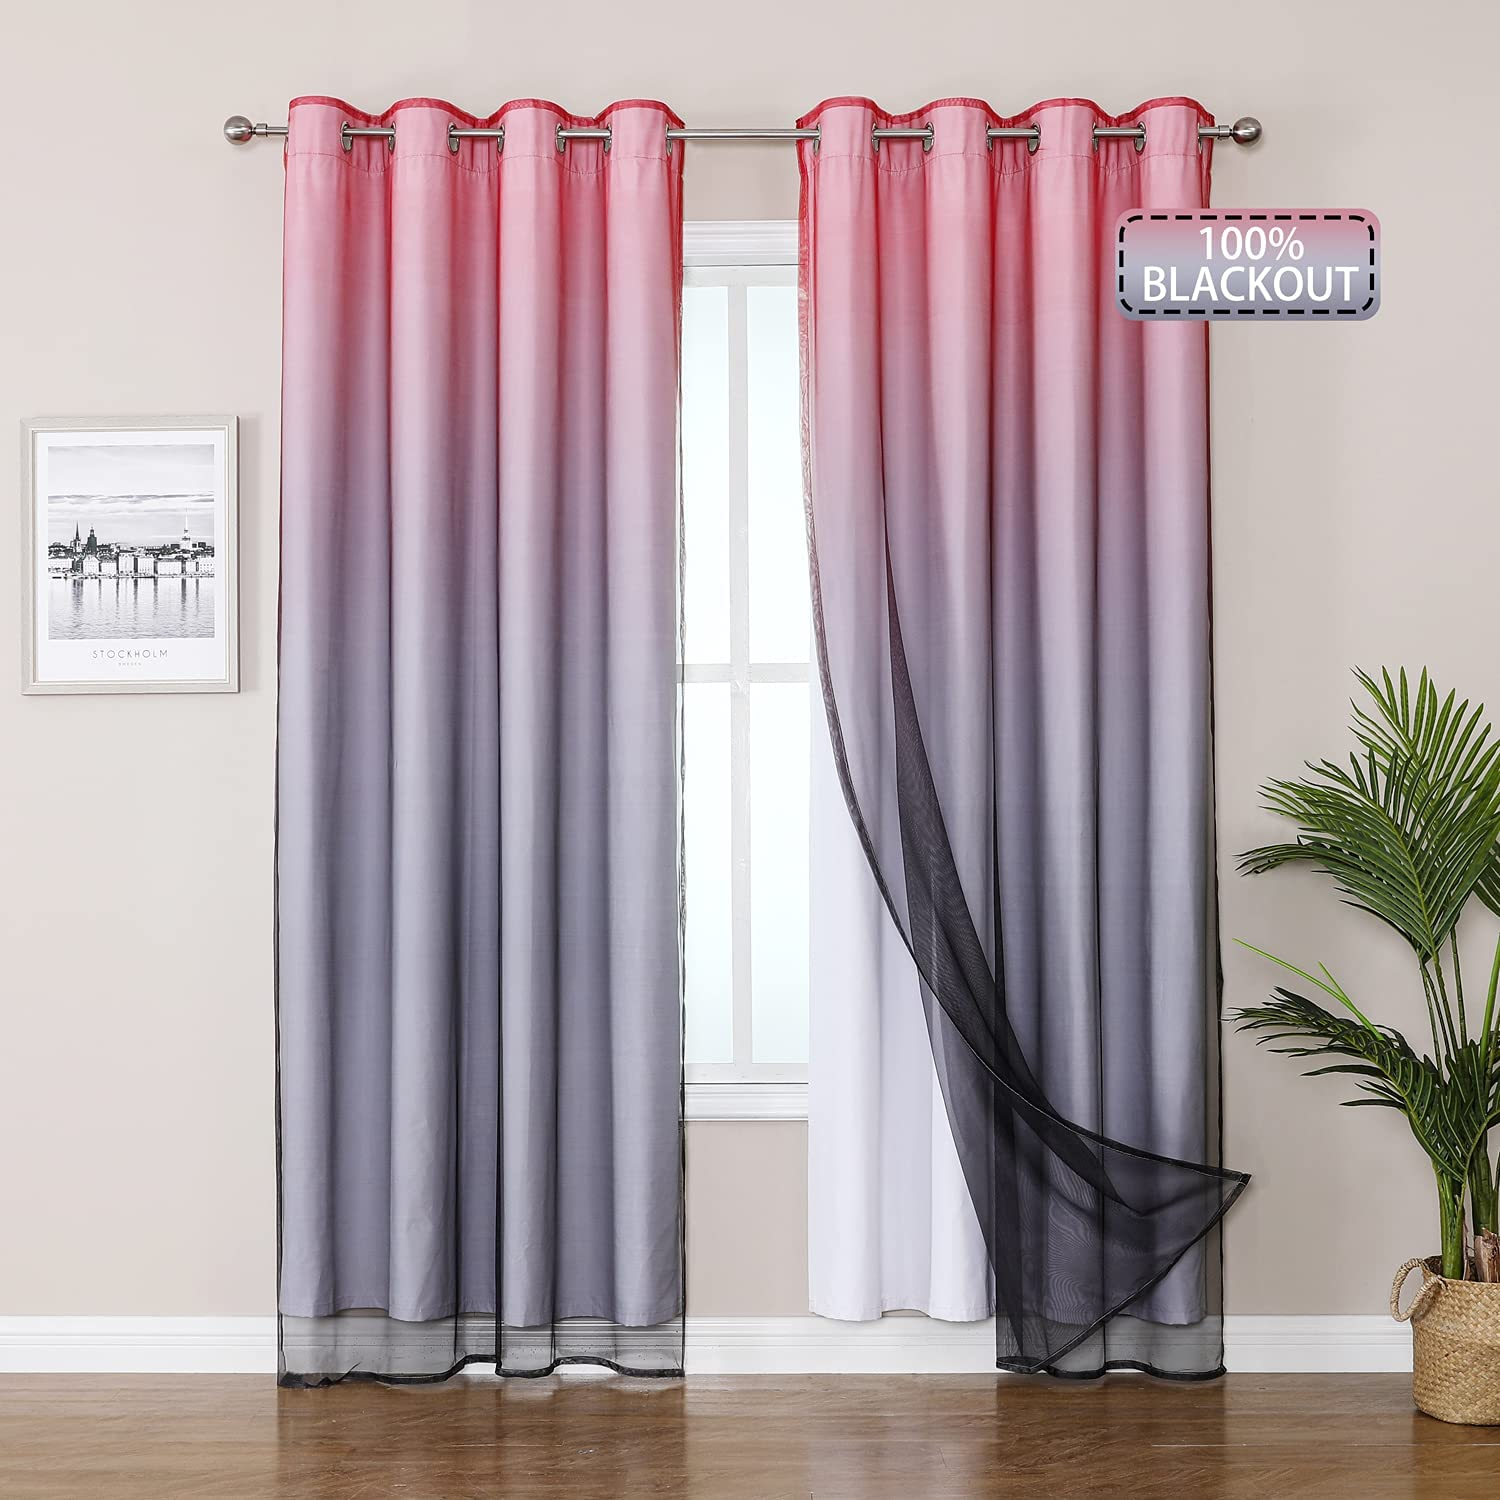 Selectex Mix Outstanding and Match Curtain - Curtains Max 60% OFF 100% Blackout She with